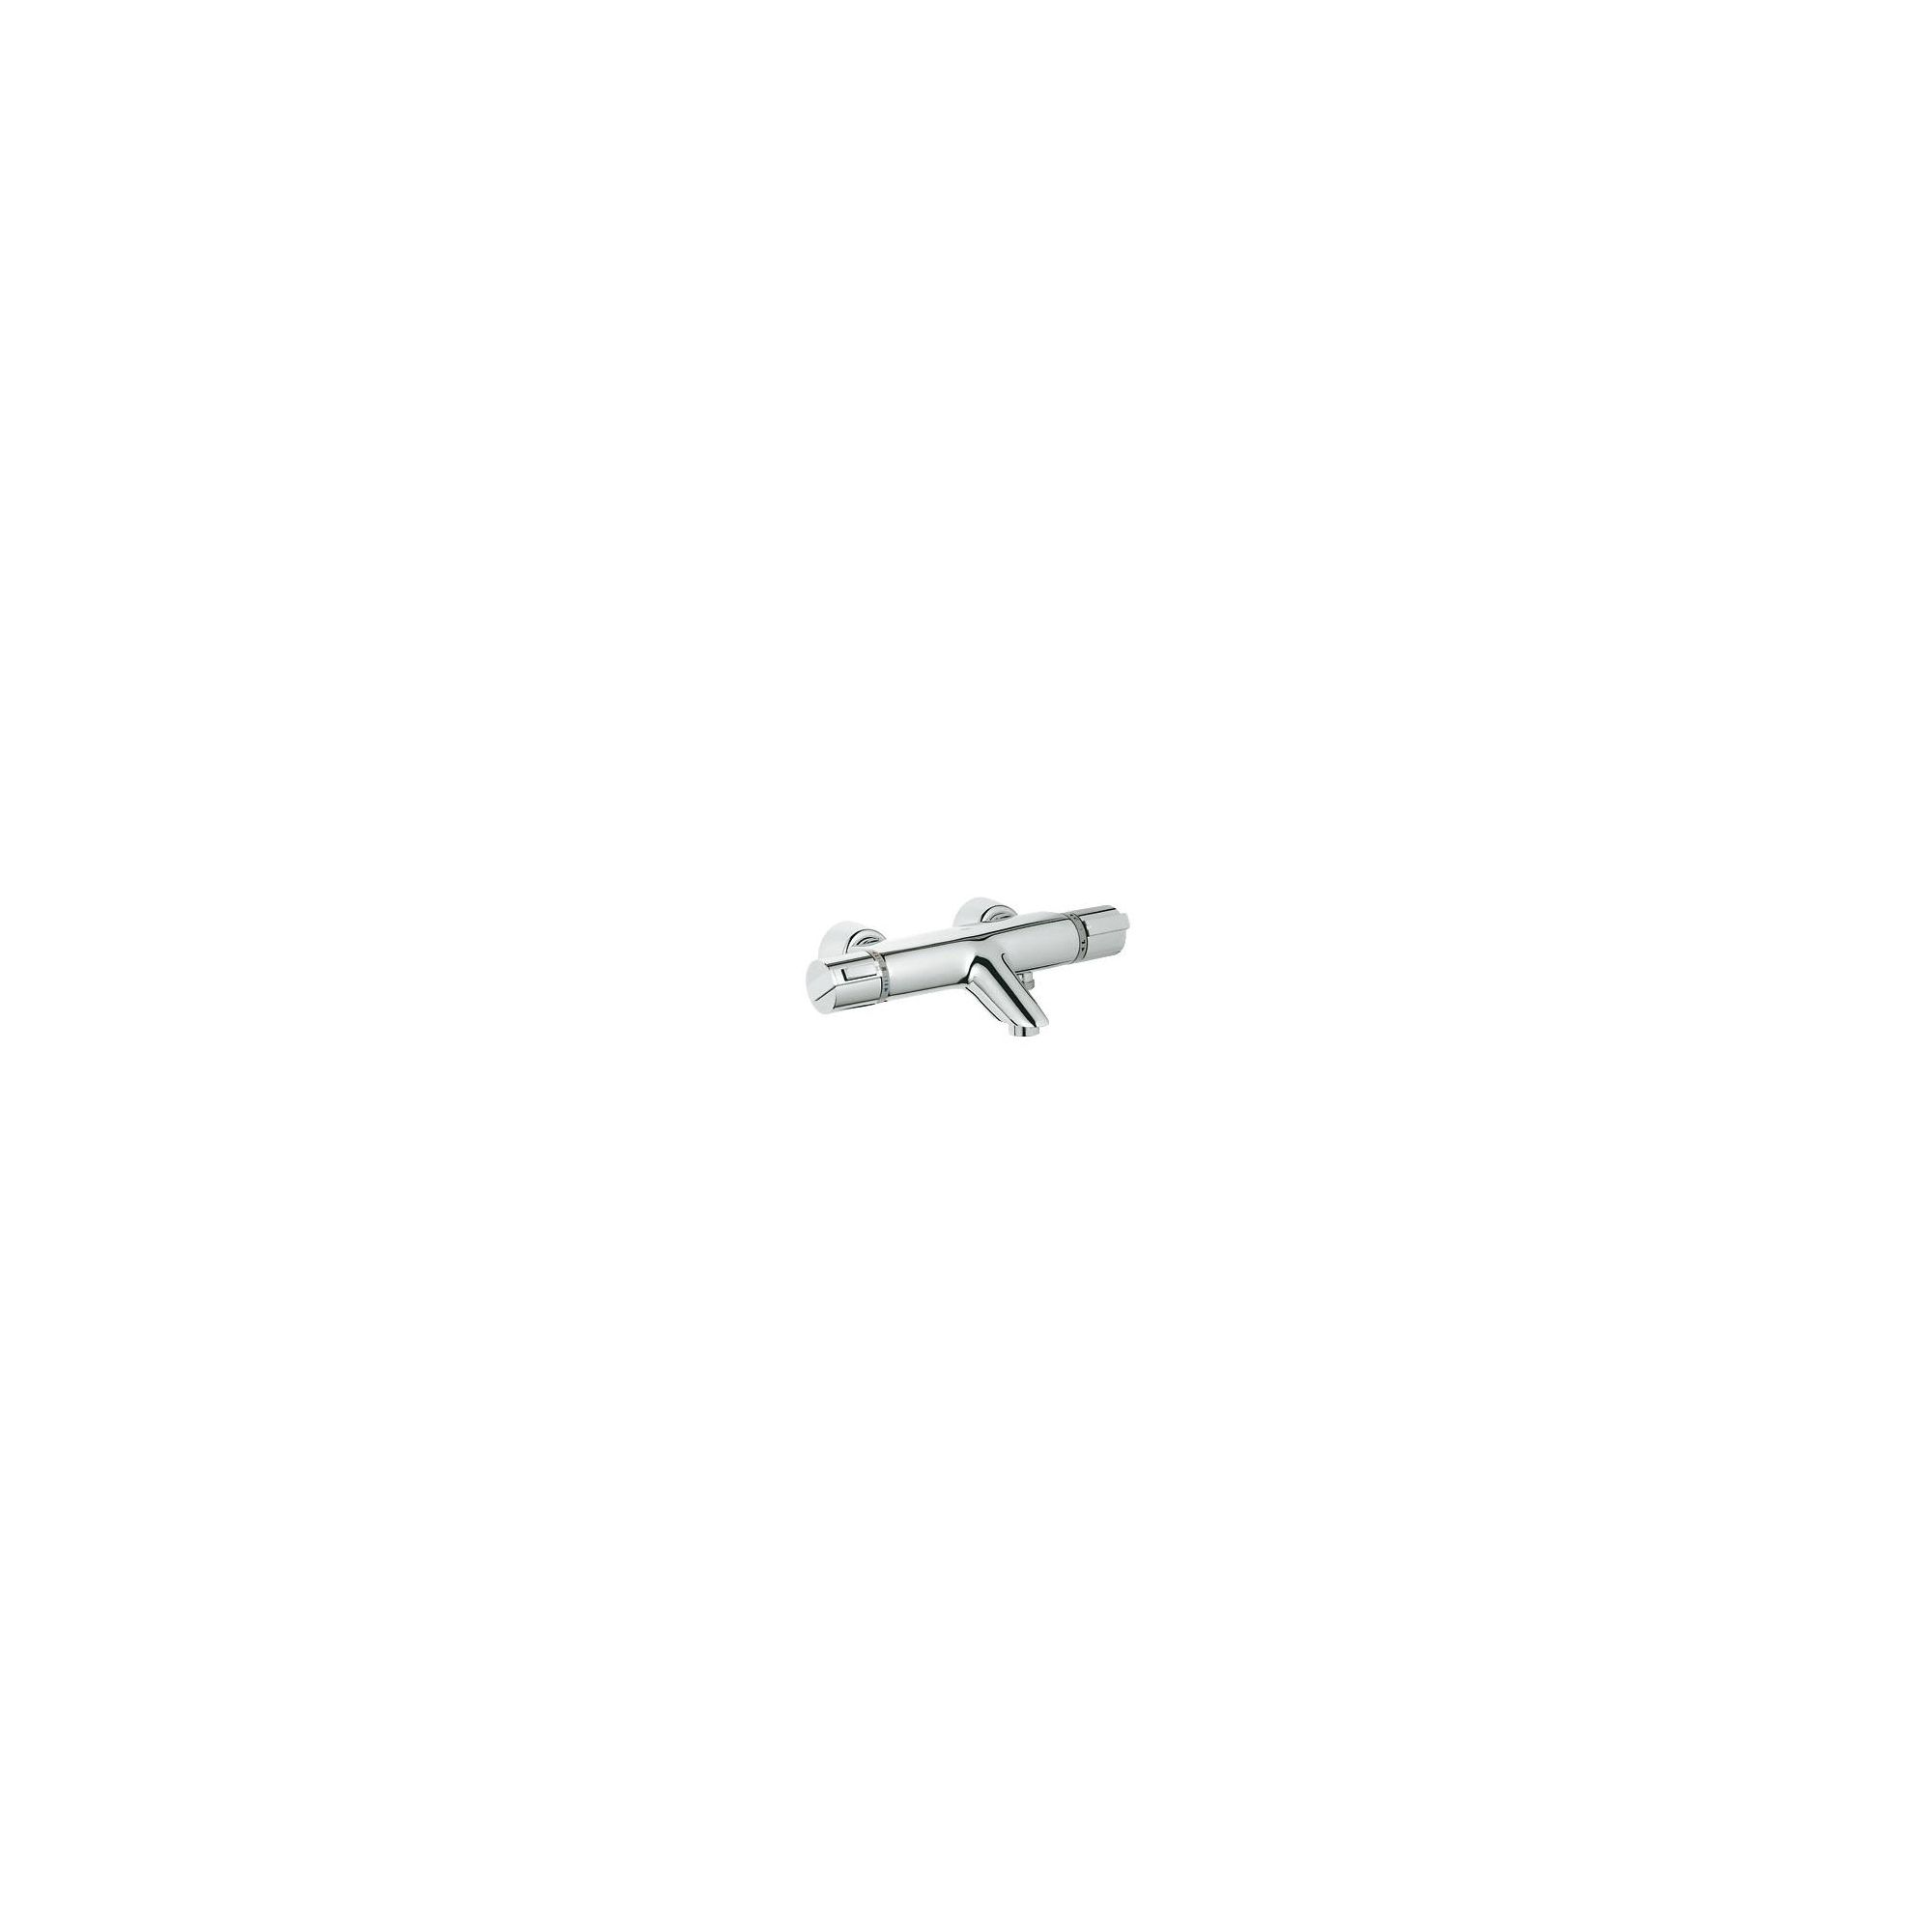 Grohe Grohtherm 2000 Thermostatic Bath Shower Mixer Tap, Wall Mounted, Chrome at Tesco Direct